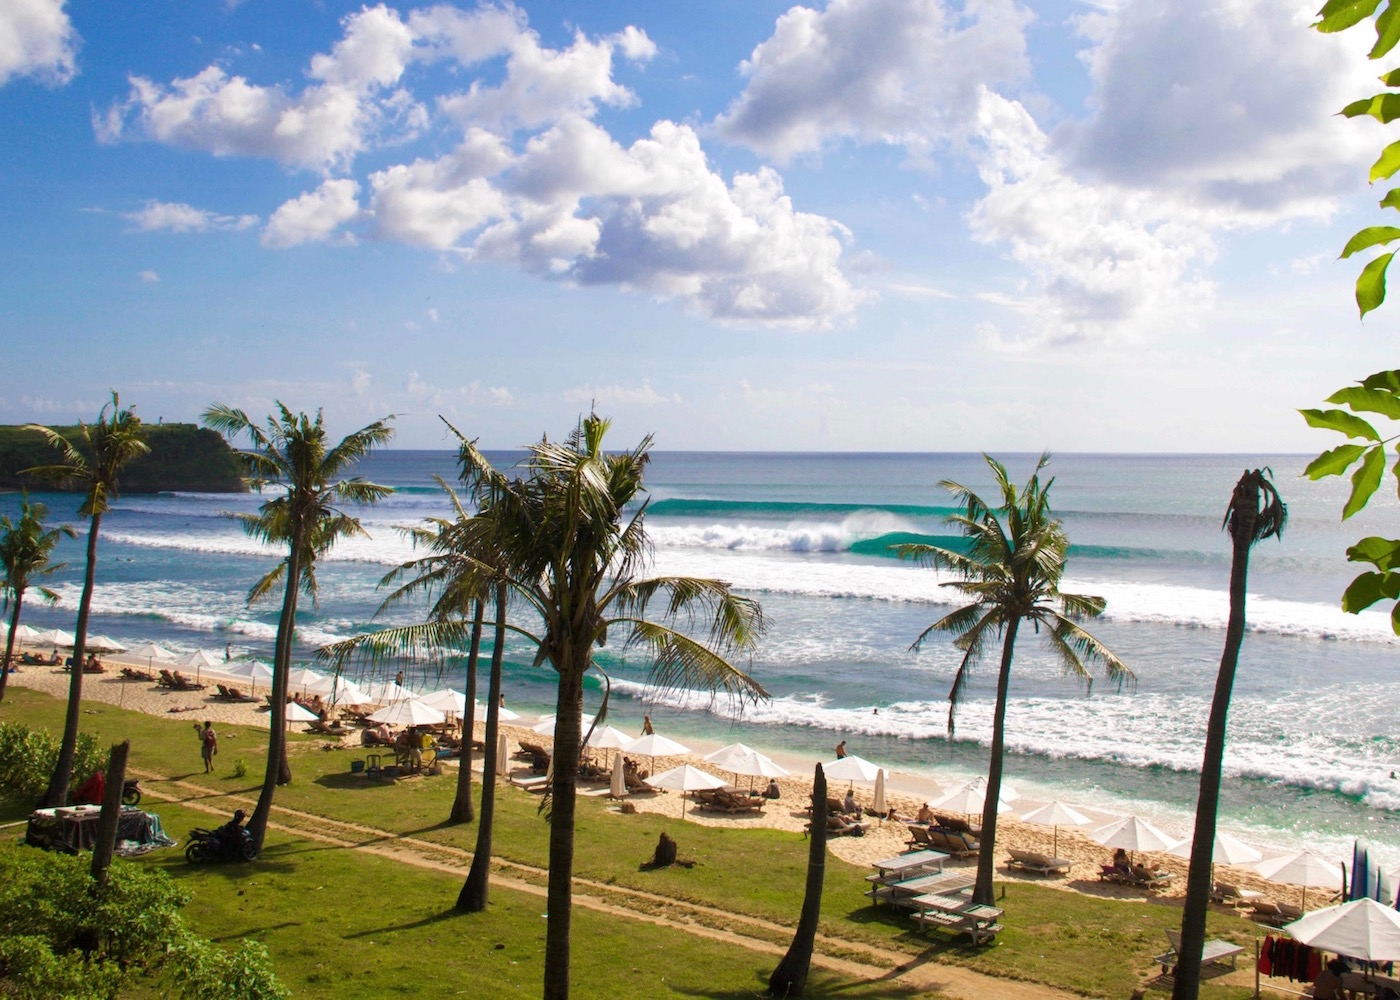 View of the surf, sand and palm trees at Balangan Beach